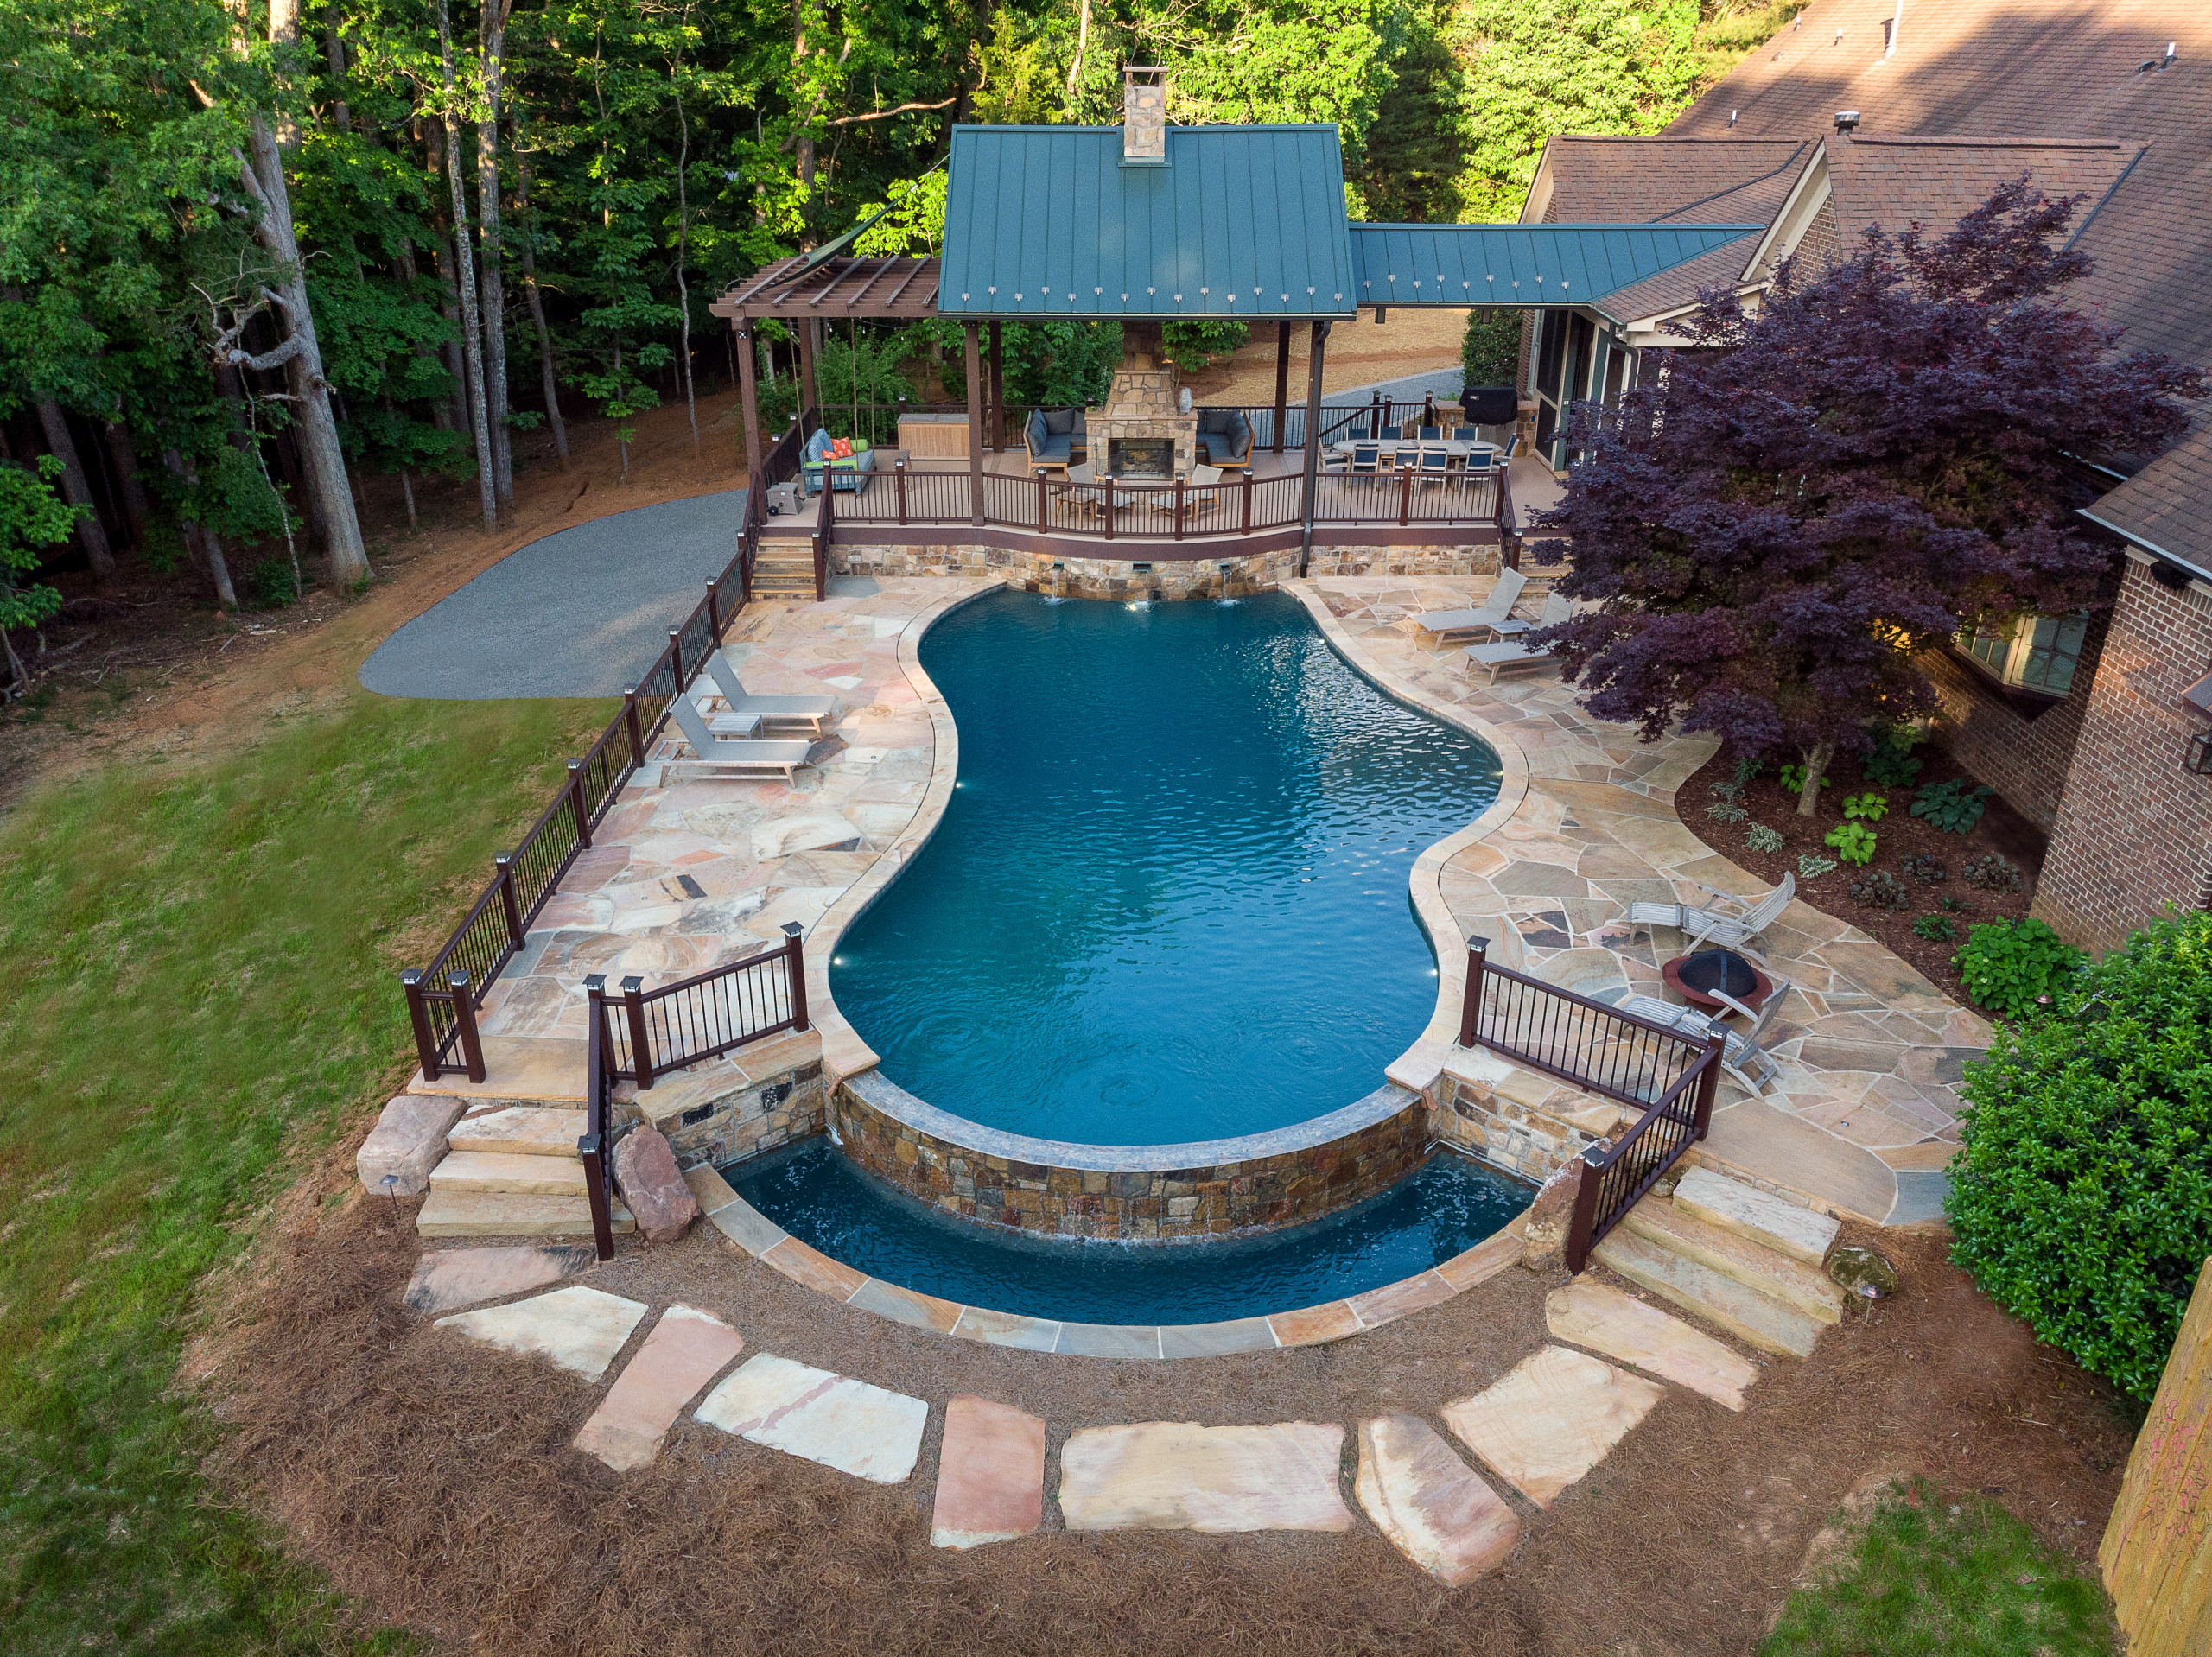 Luxury vanishing edge pool with copper scuppers